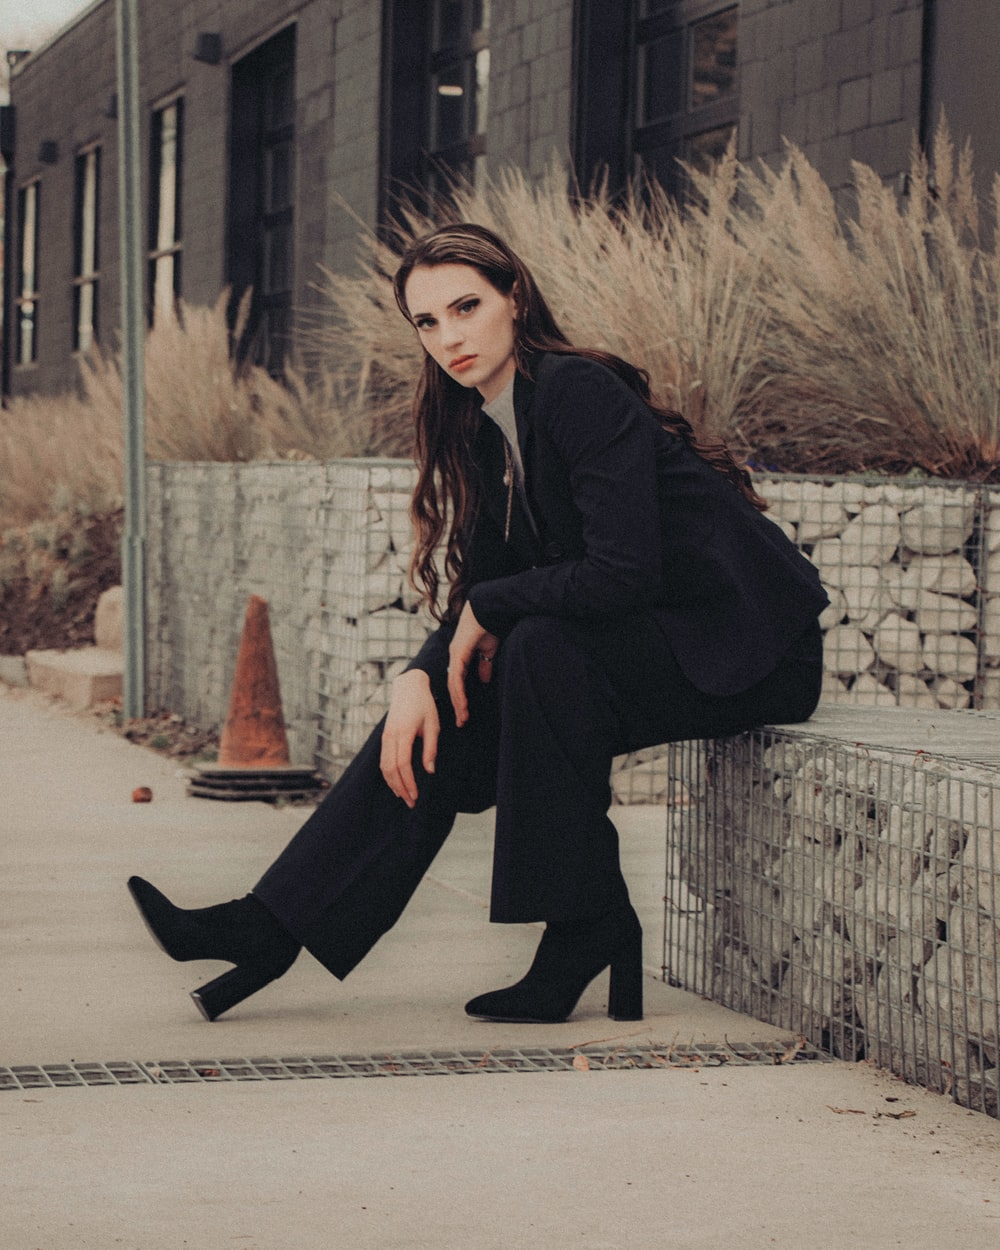 woman in black coat and black pants sitting on concrete wall during daytime